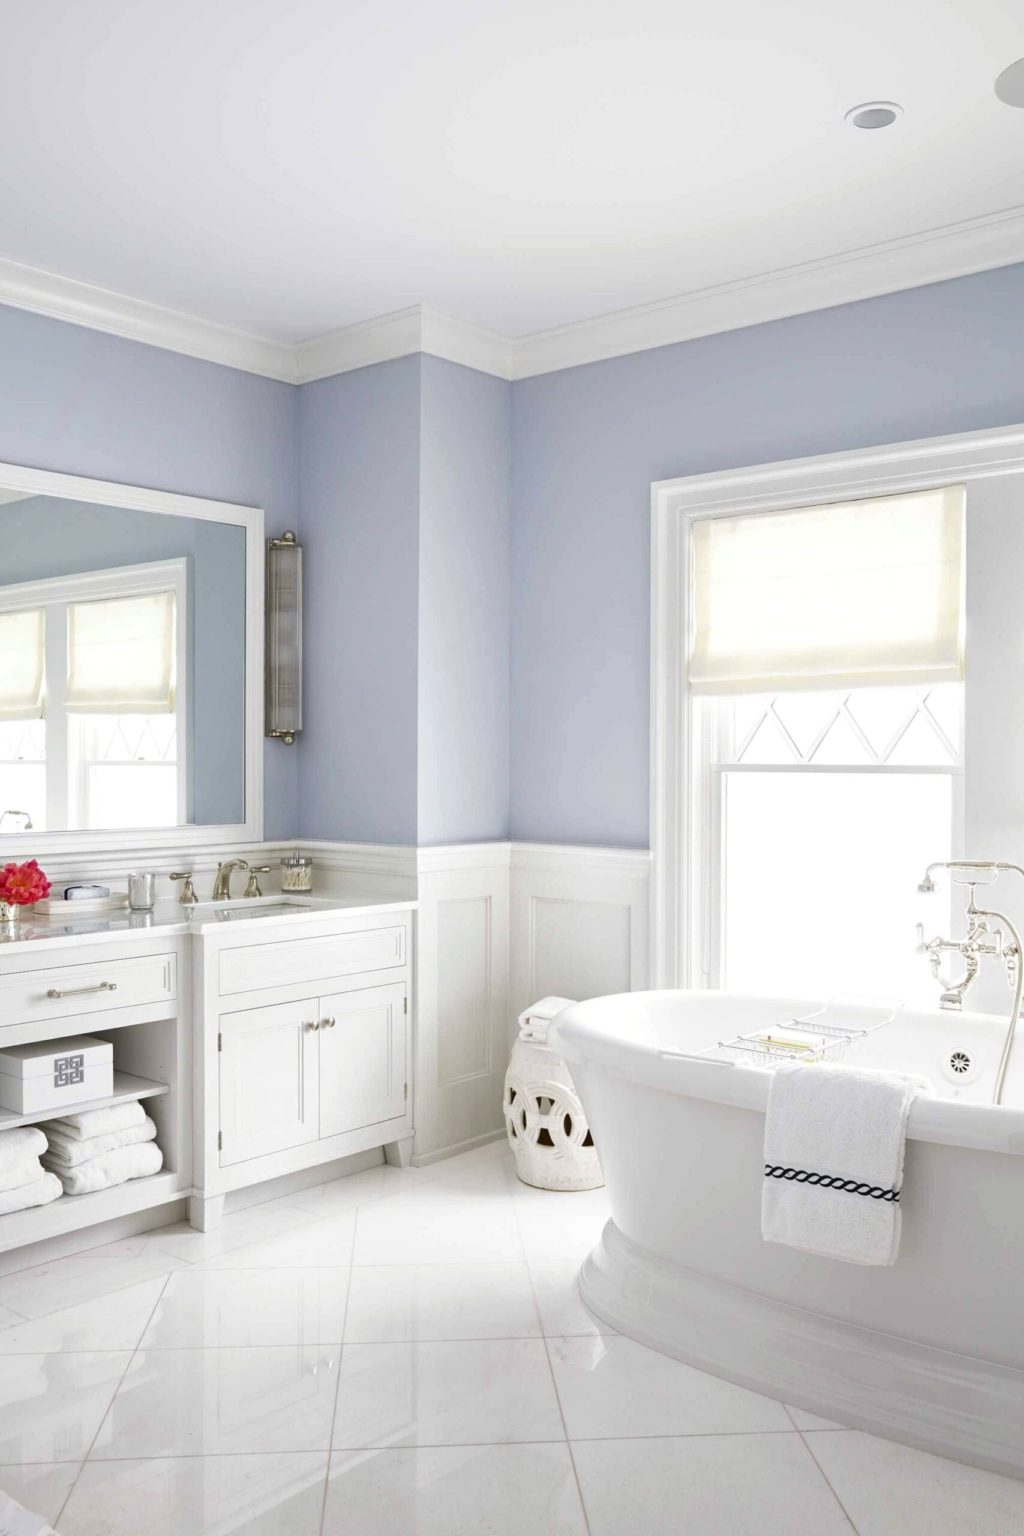 Use-of-paint-3-1024x1536 Top 10 Outdated Bathroom Design Trends to Avoid in 2021